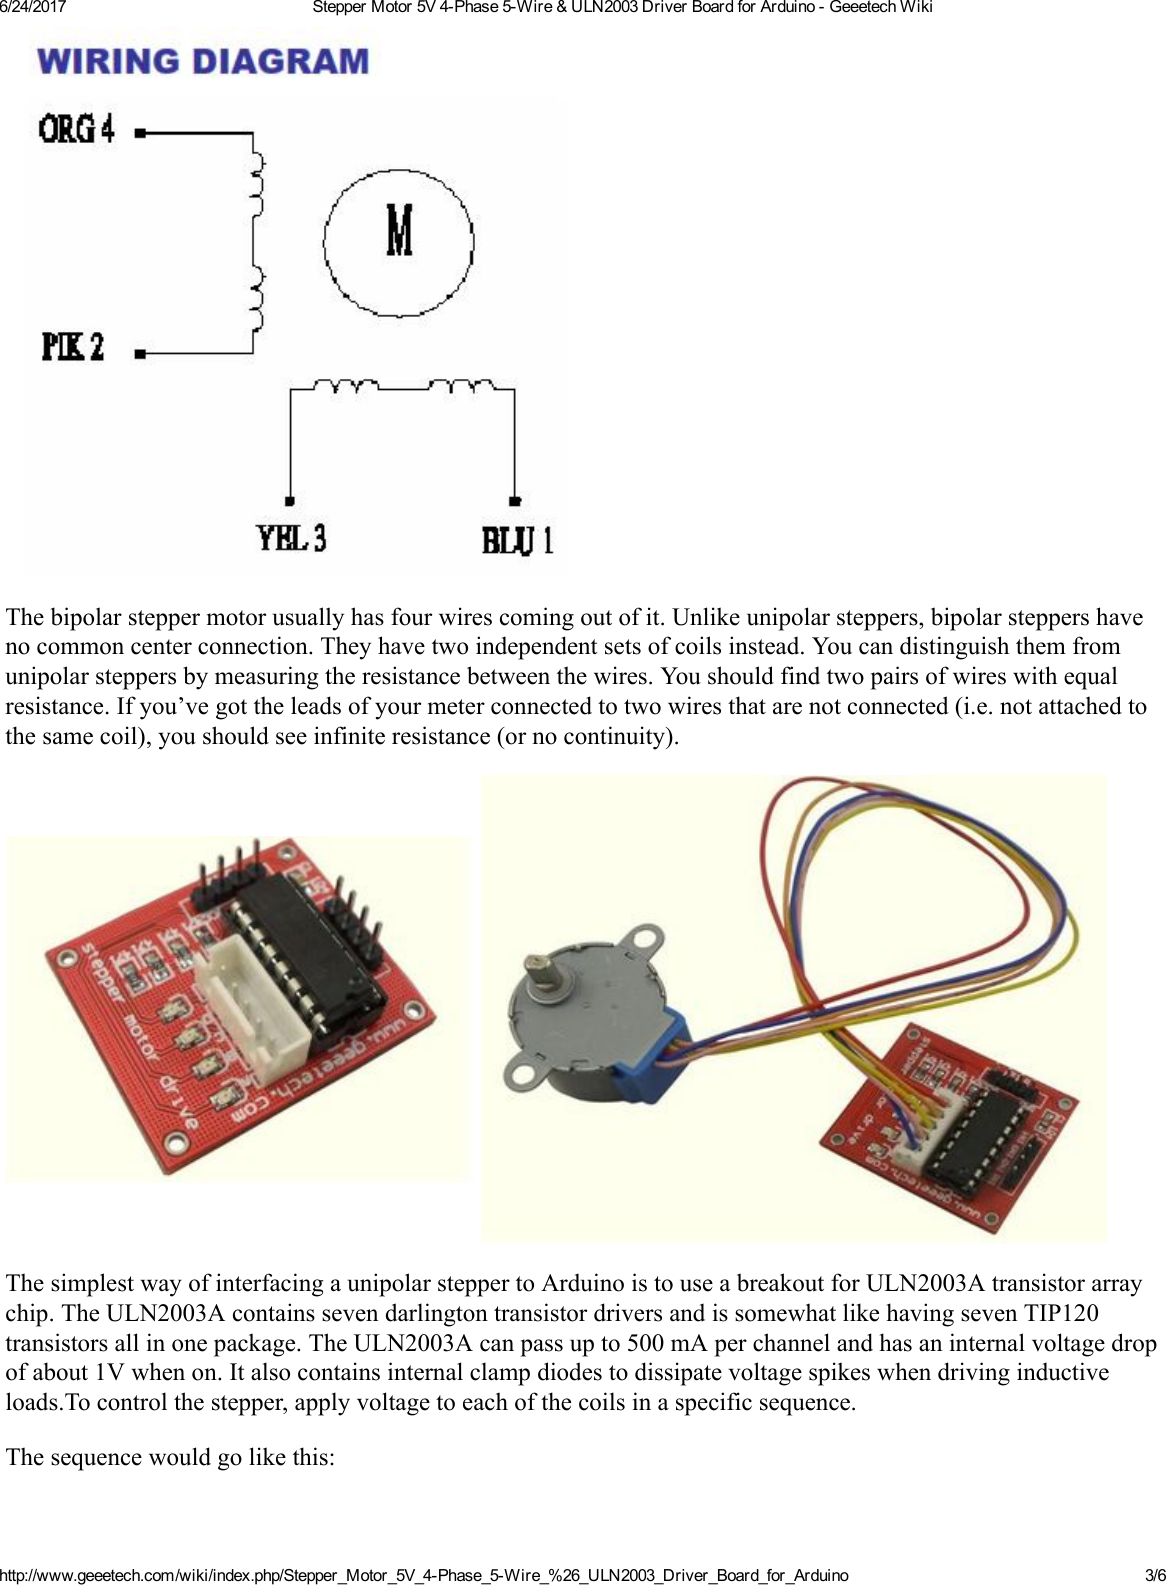 Stepper Motor 5v 4 Phase 5 Wire Uln2003 Driver Board For Arduino Wiring Page 3 Of 6